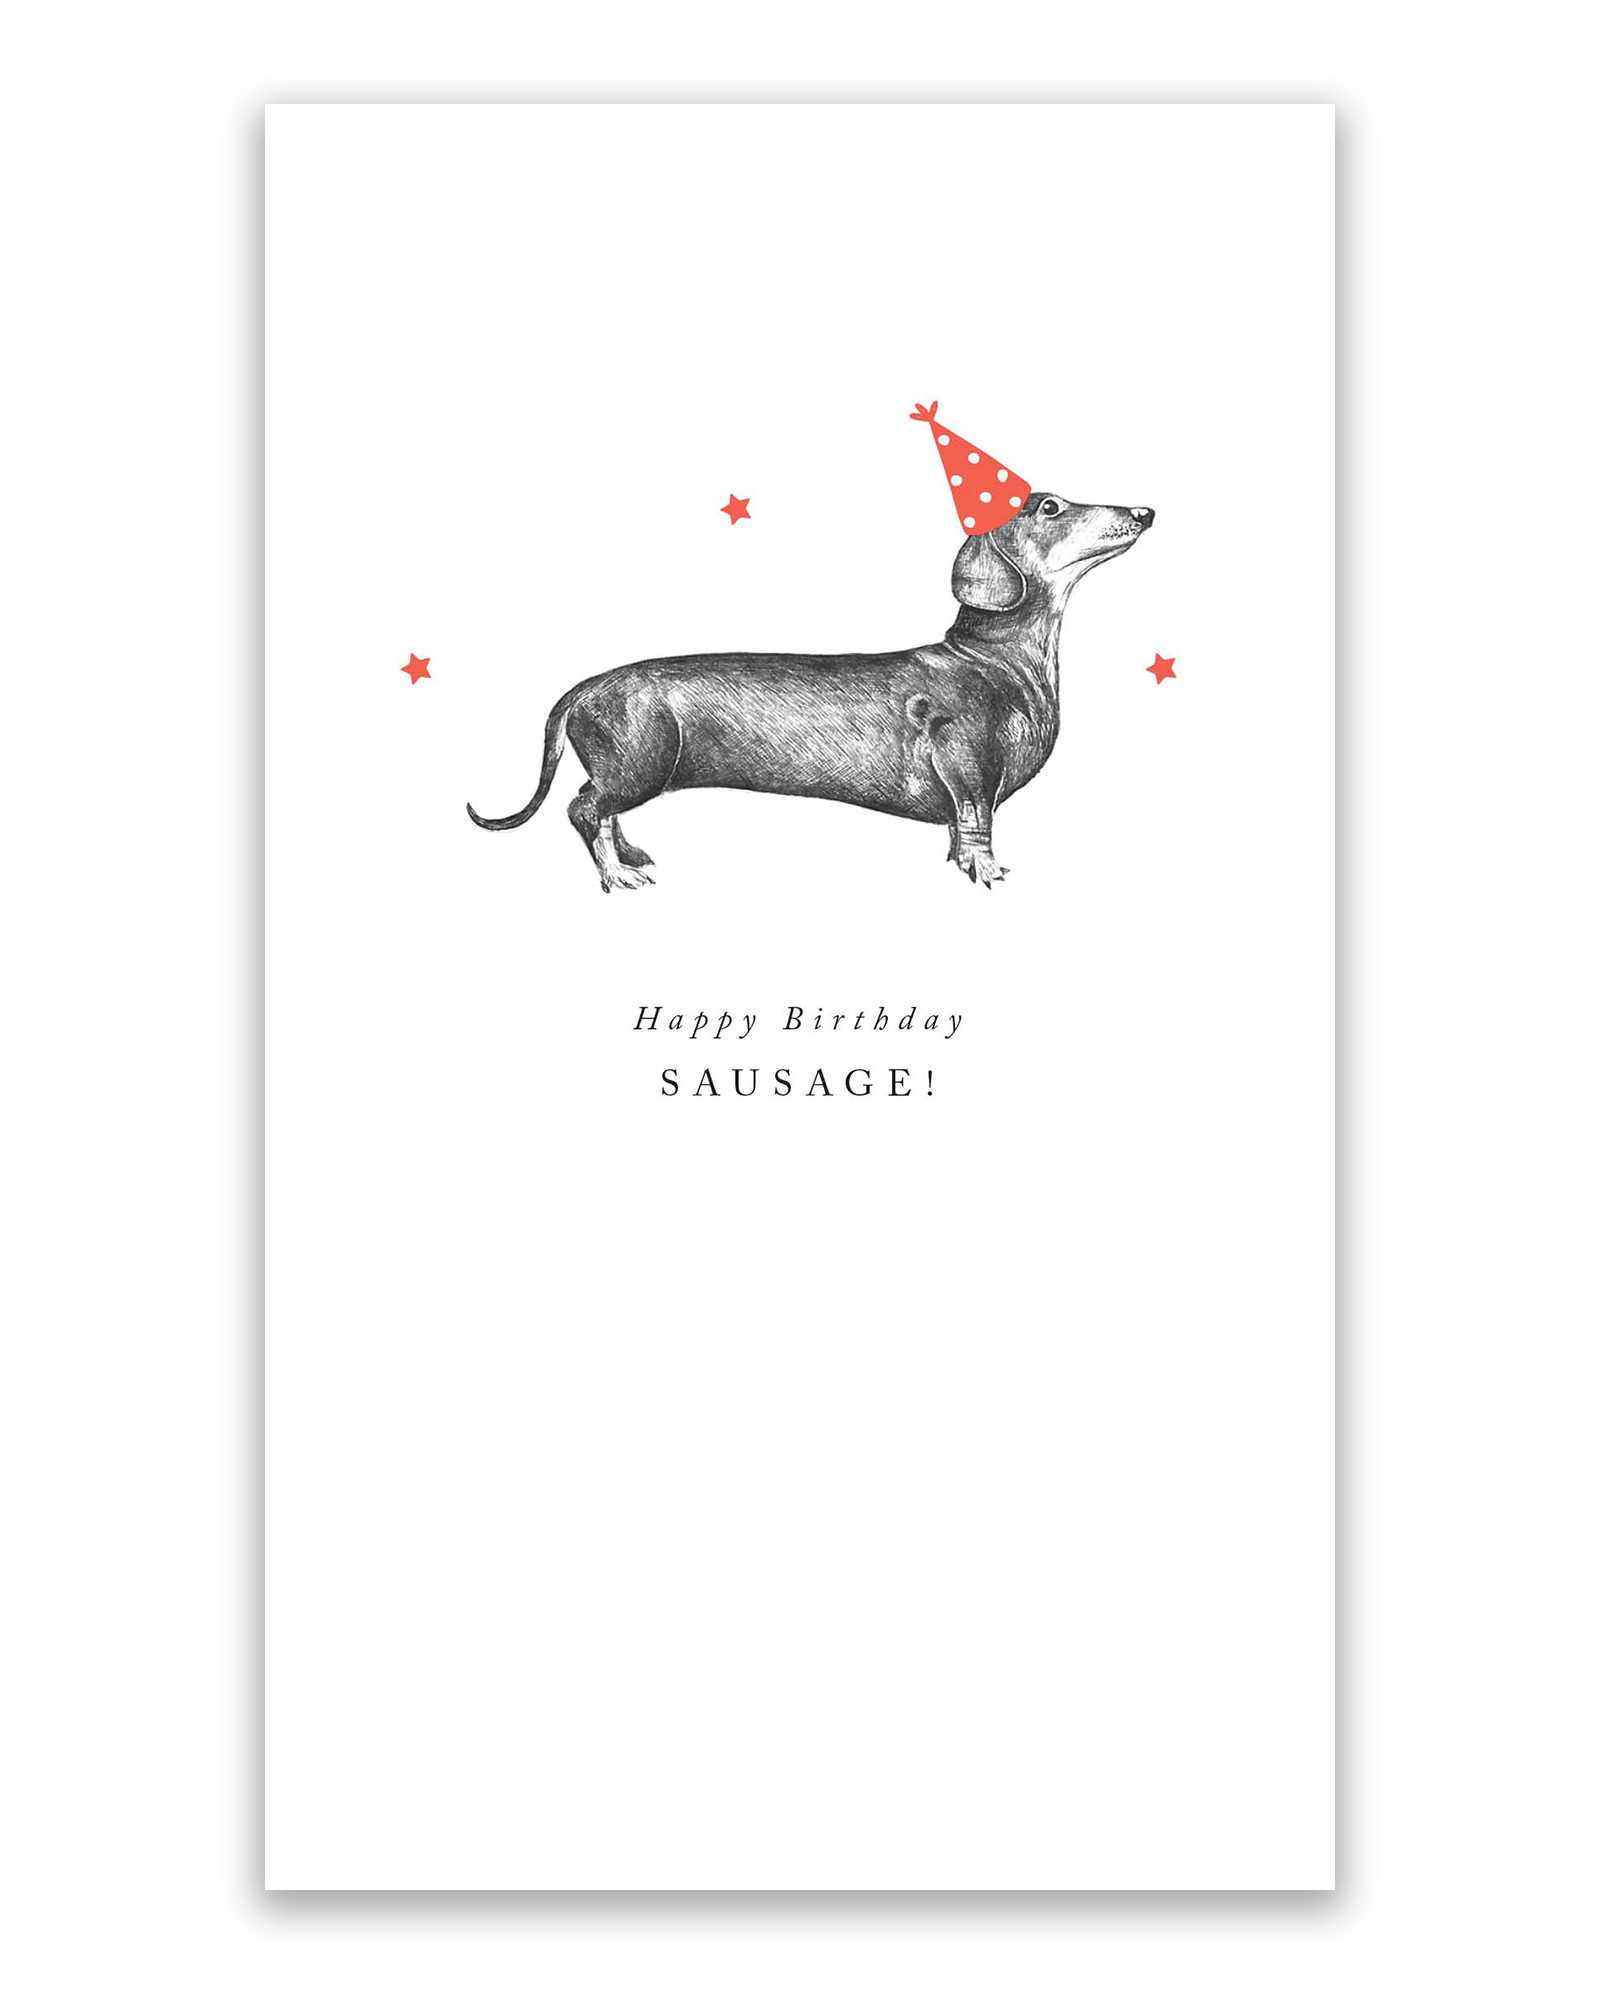 Celebrations Occasions Free Delivery Dachshund Sausage Dog Birthday Card Sarathaarts Ac In